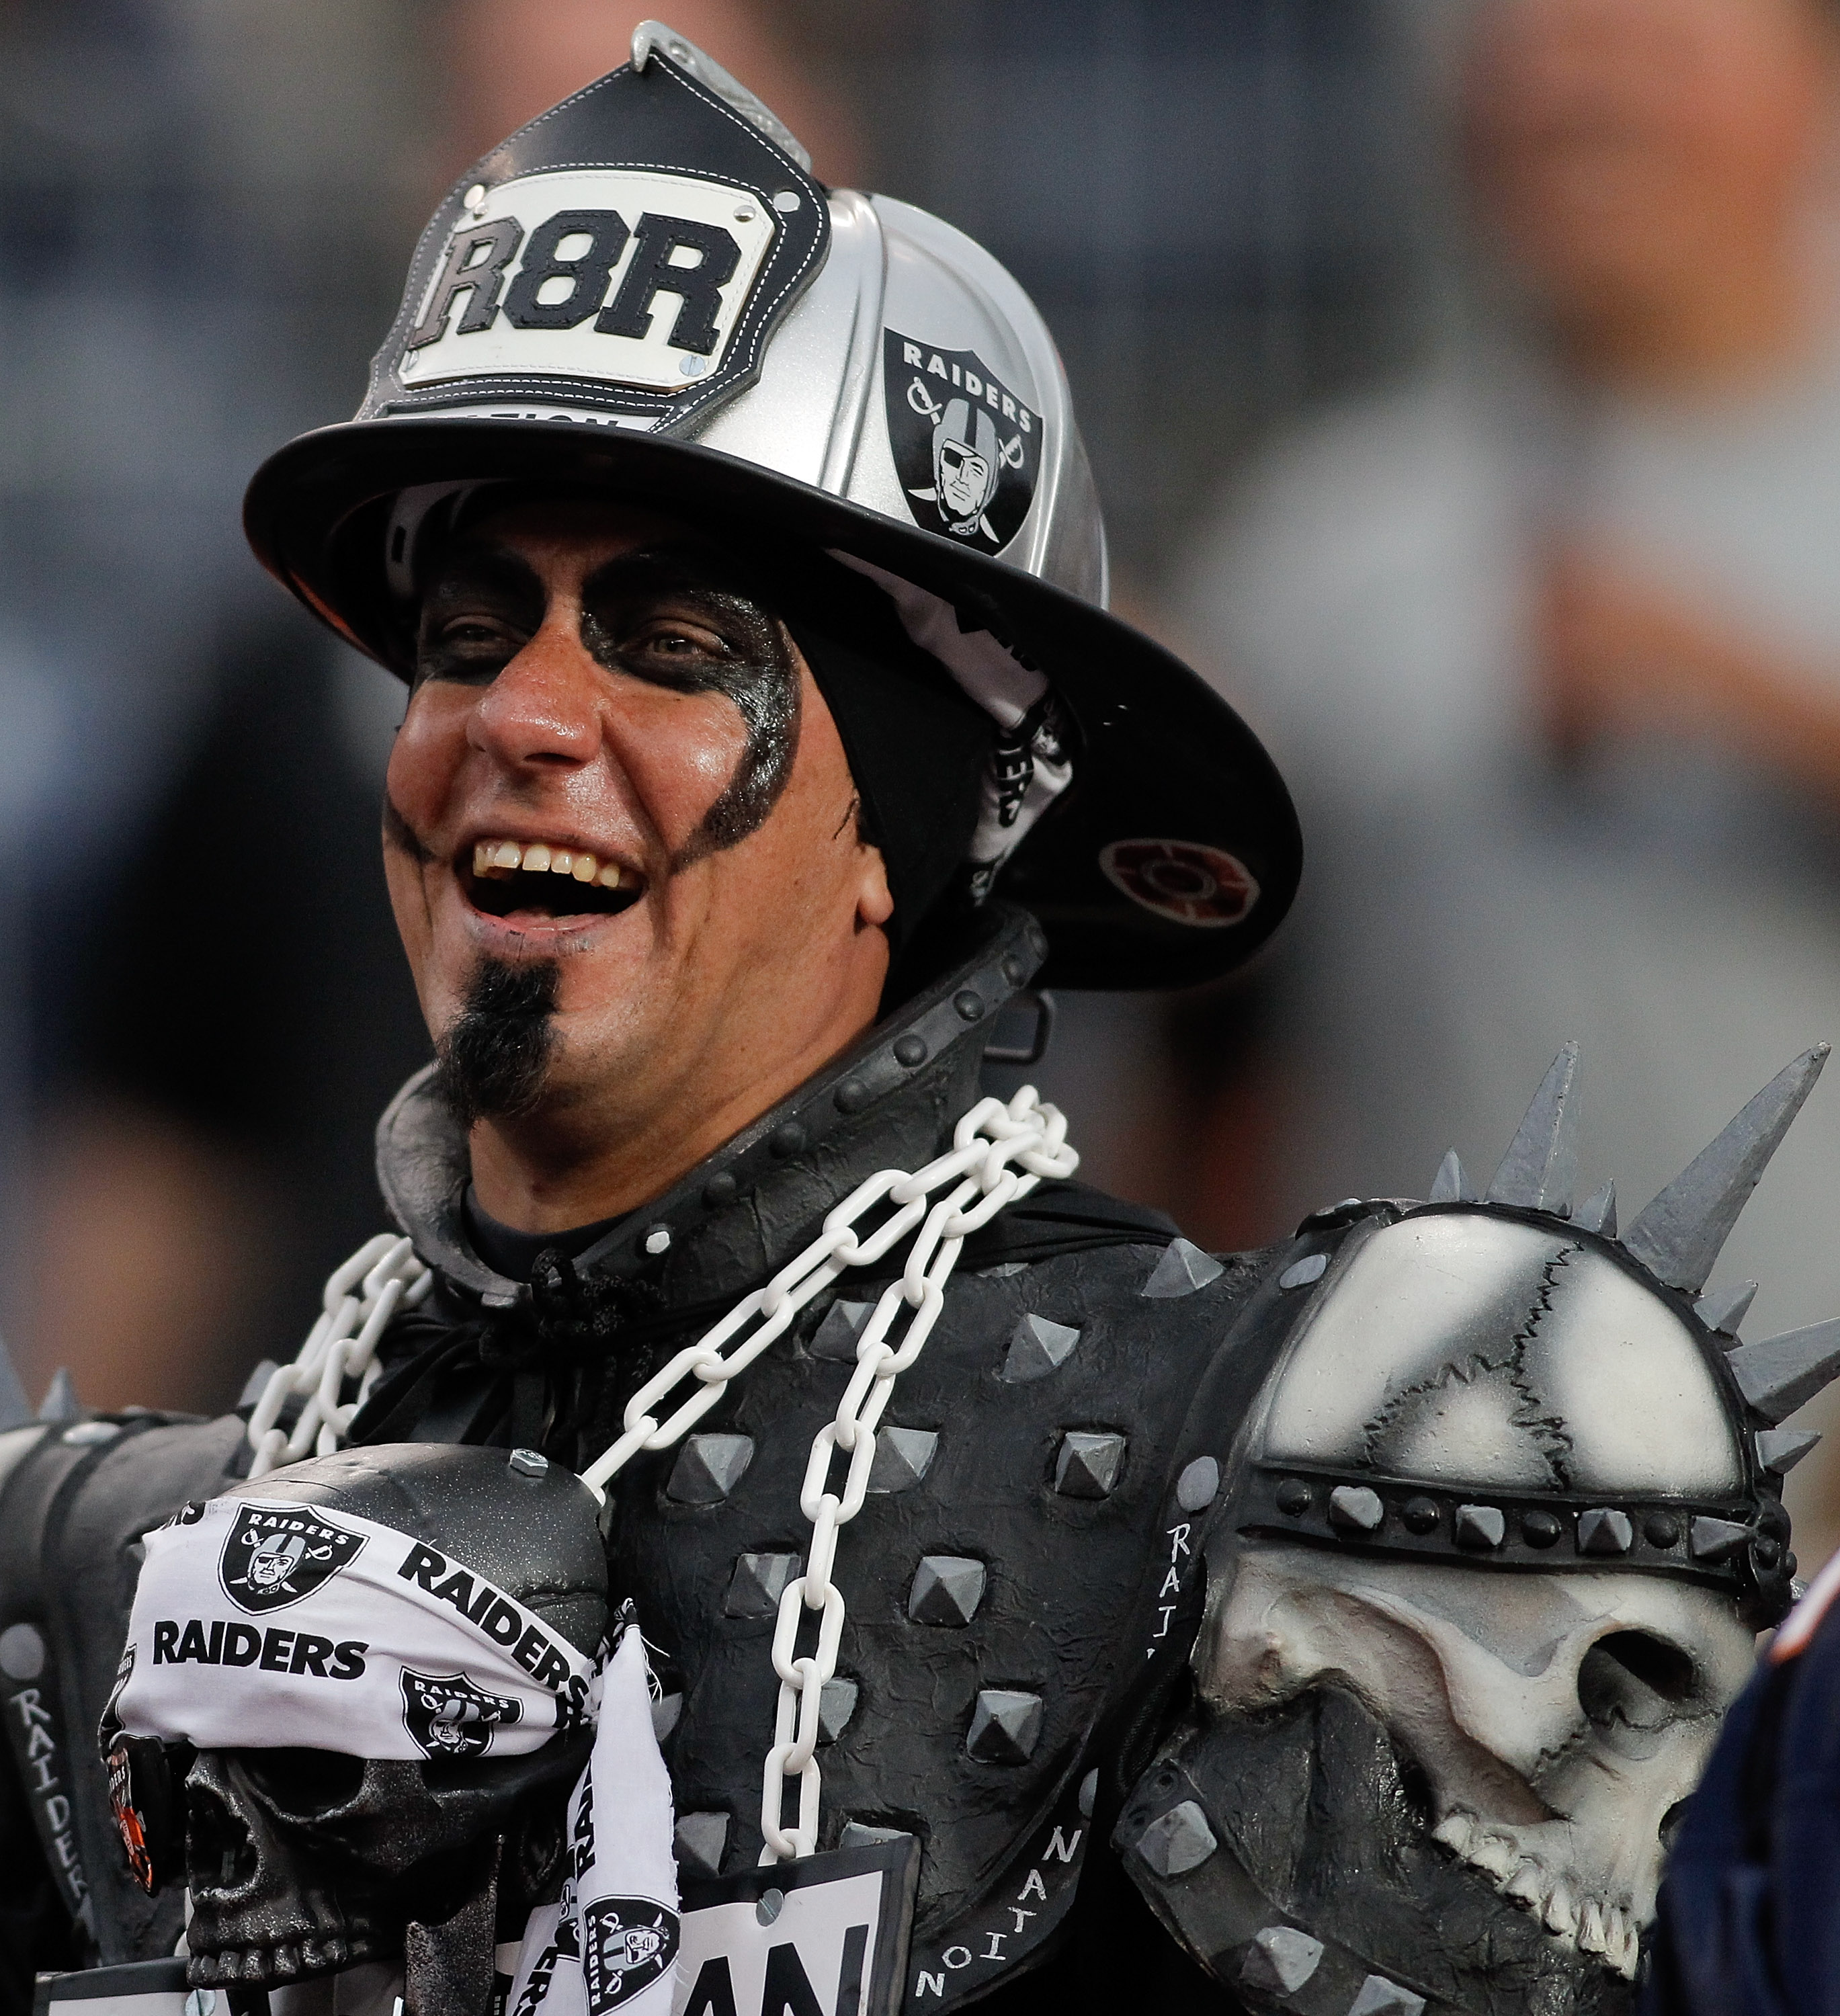 DENVER - OCTOBER 24:  An Oakland Raiders fan is all smiles during the Raiders 59-14 victory over the Denver Broncos at INVESCO Field at Mile High on October 24, 2010 in Denver, Colorado. (Photo by Justin Edmonds/Getty Images)